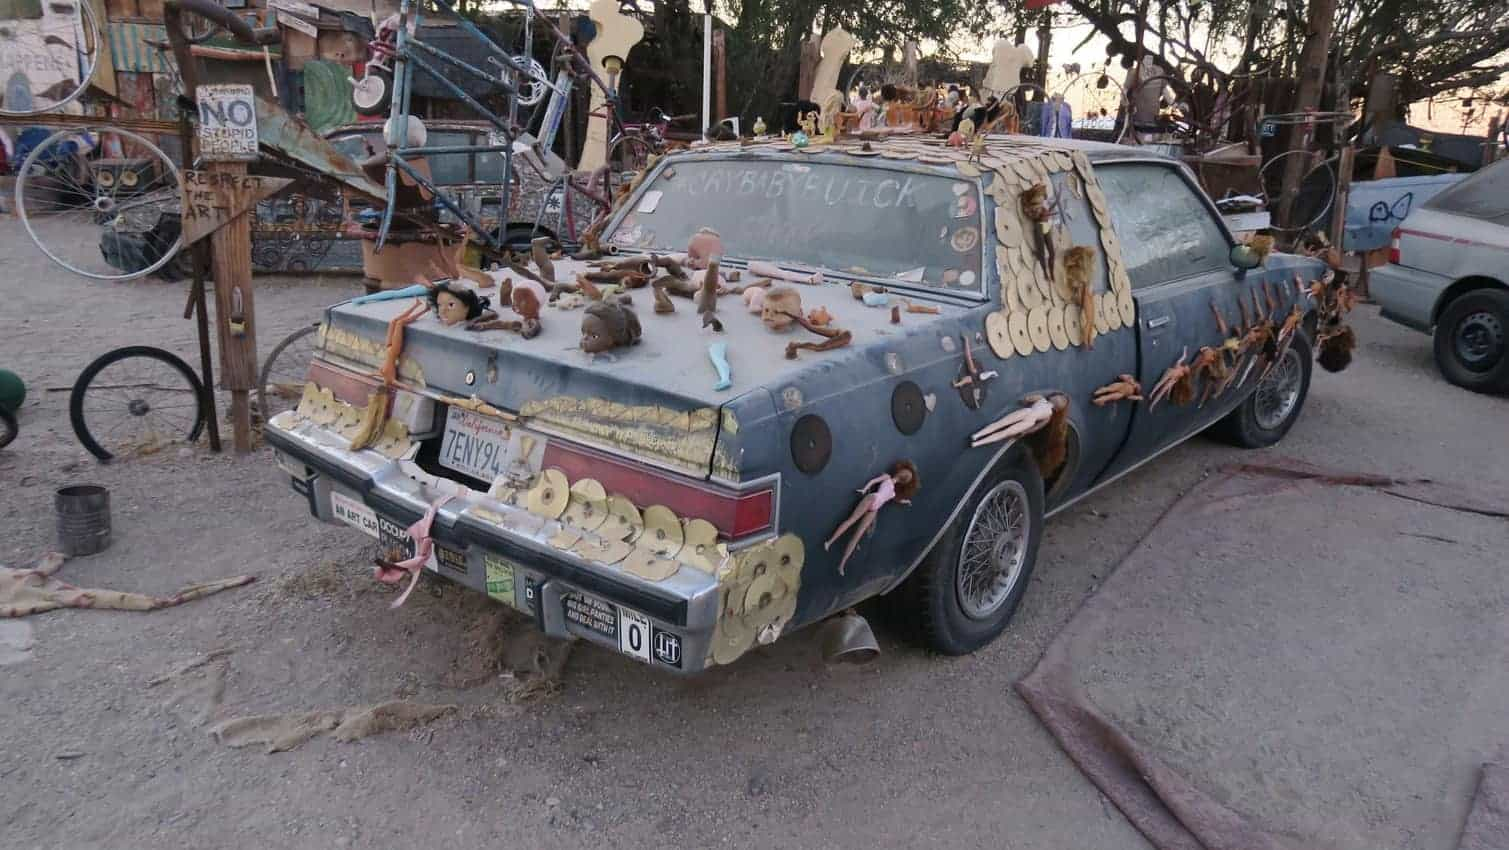 A strange art car at Slab City California.